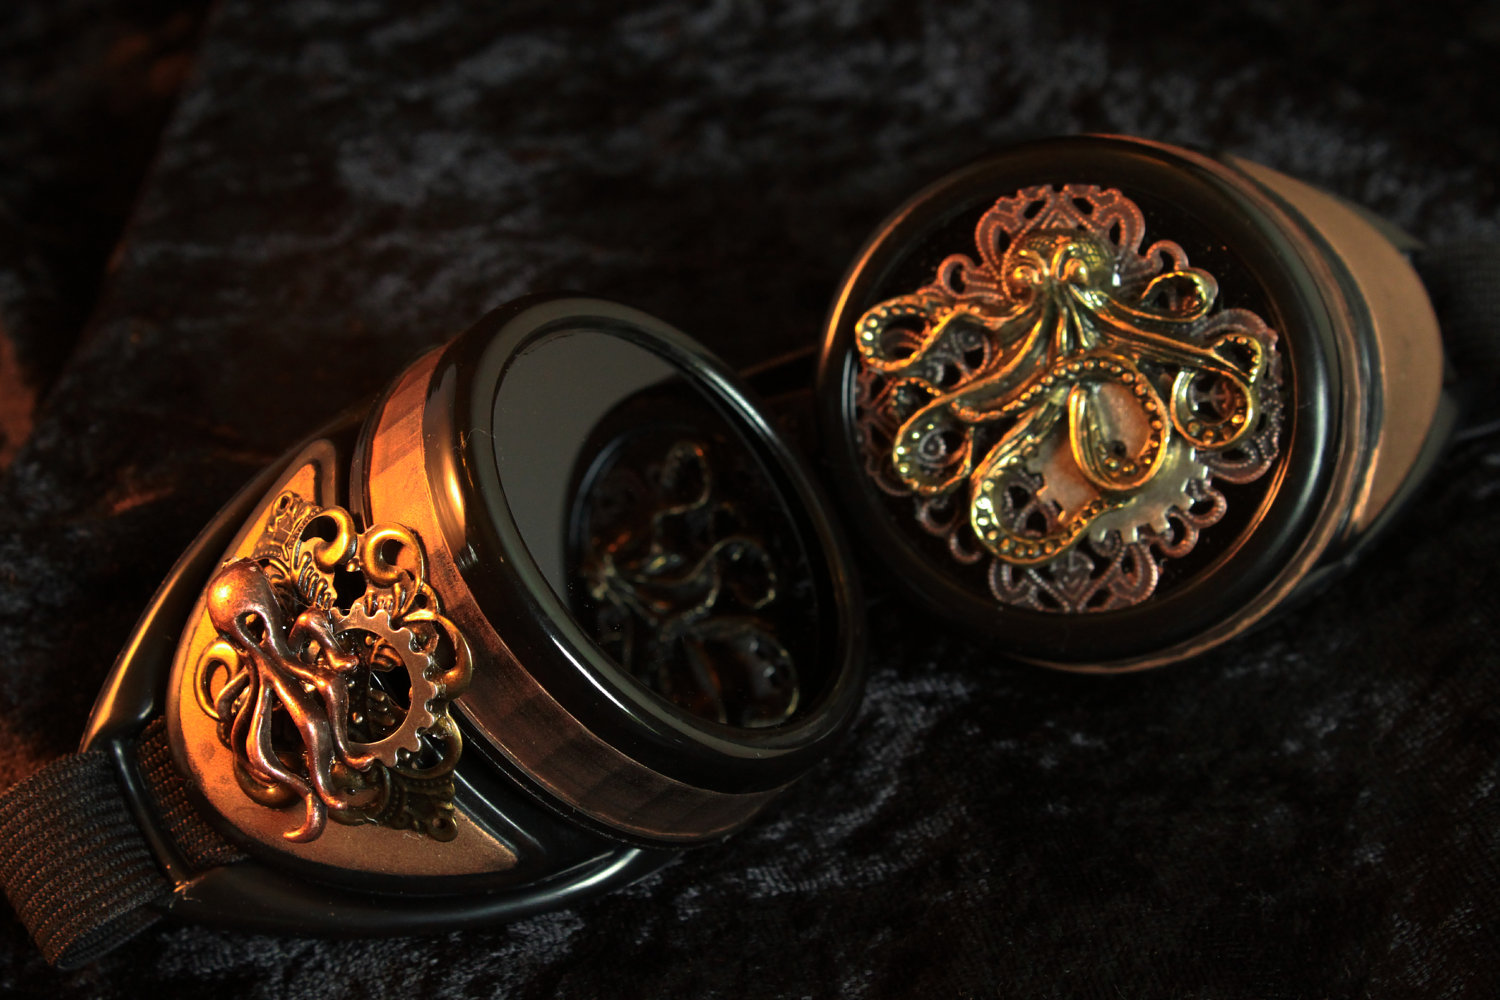 Cthulhu Goggles With Kraken Eyepiece